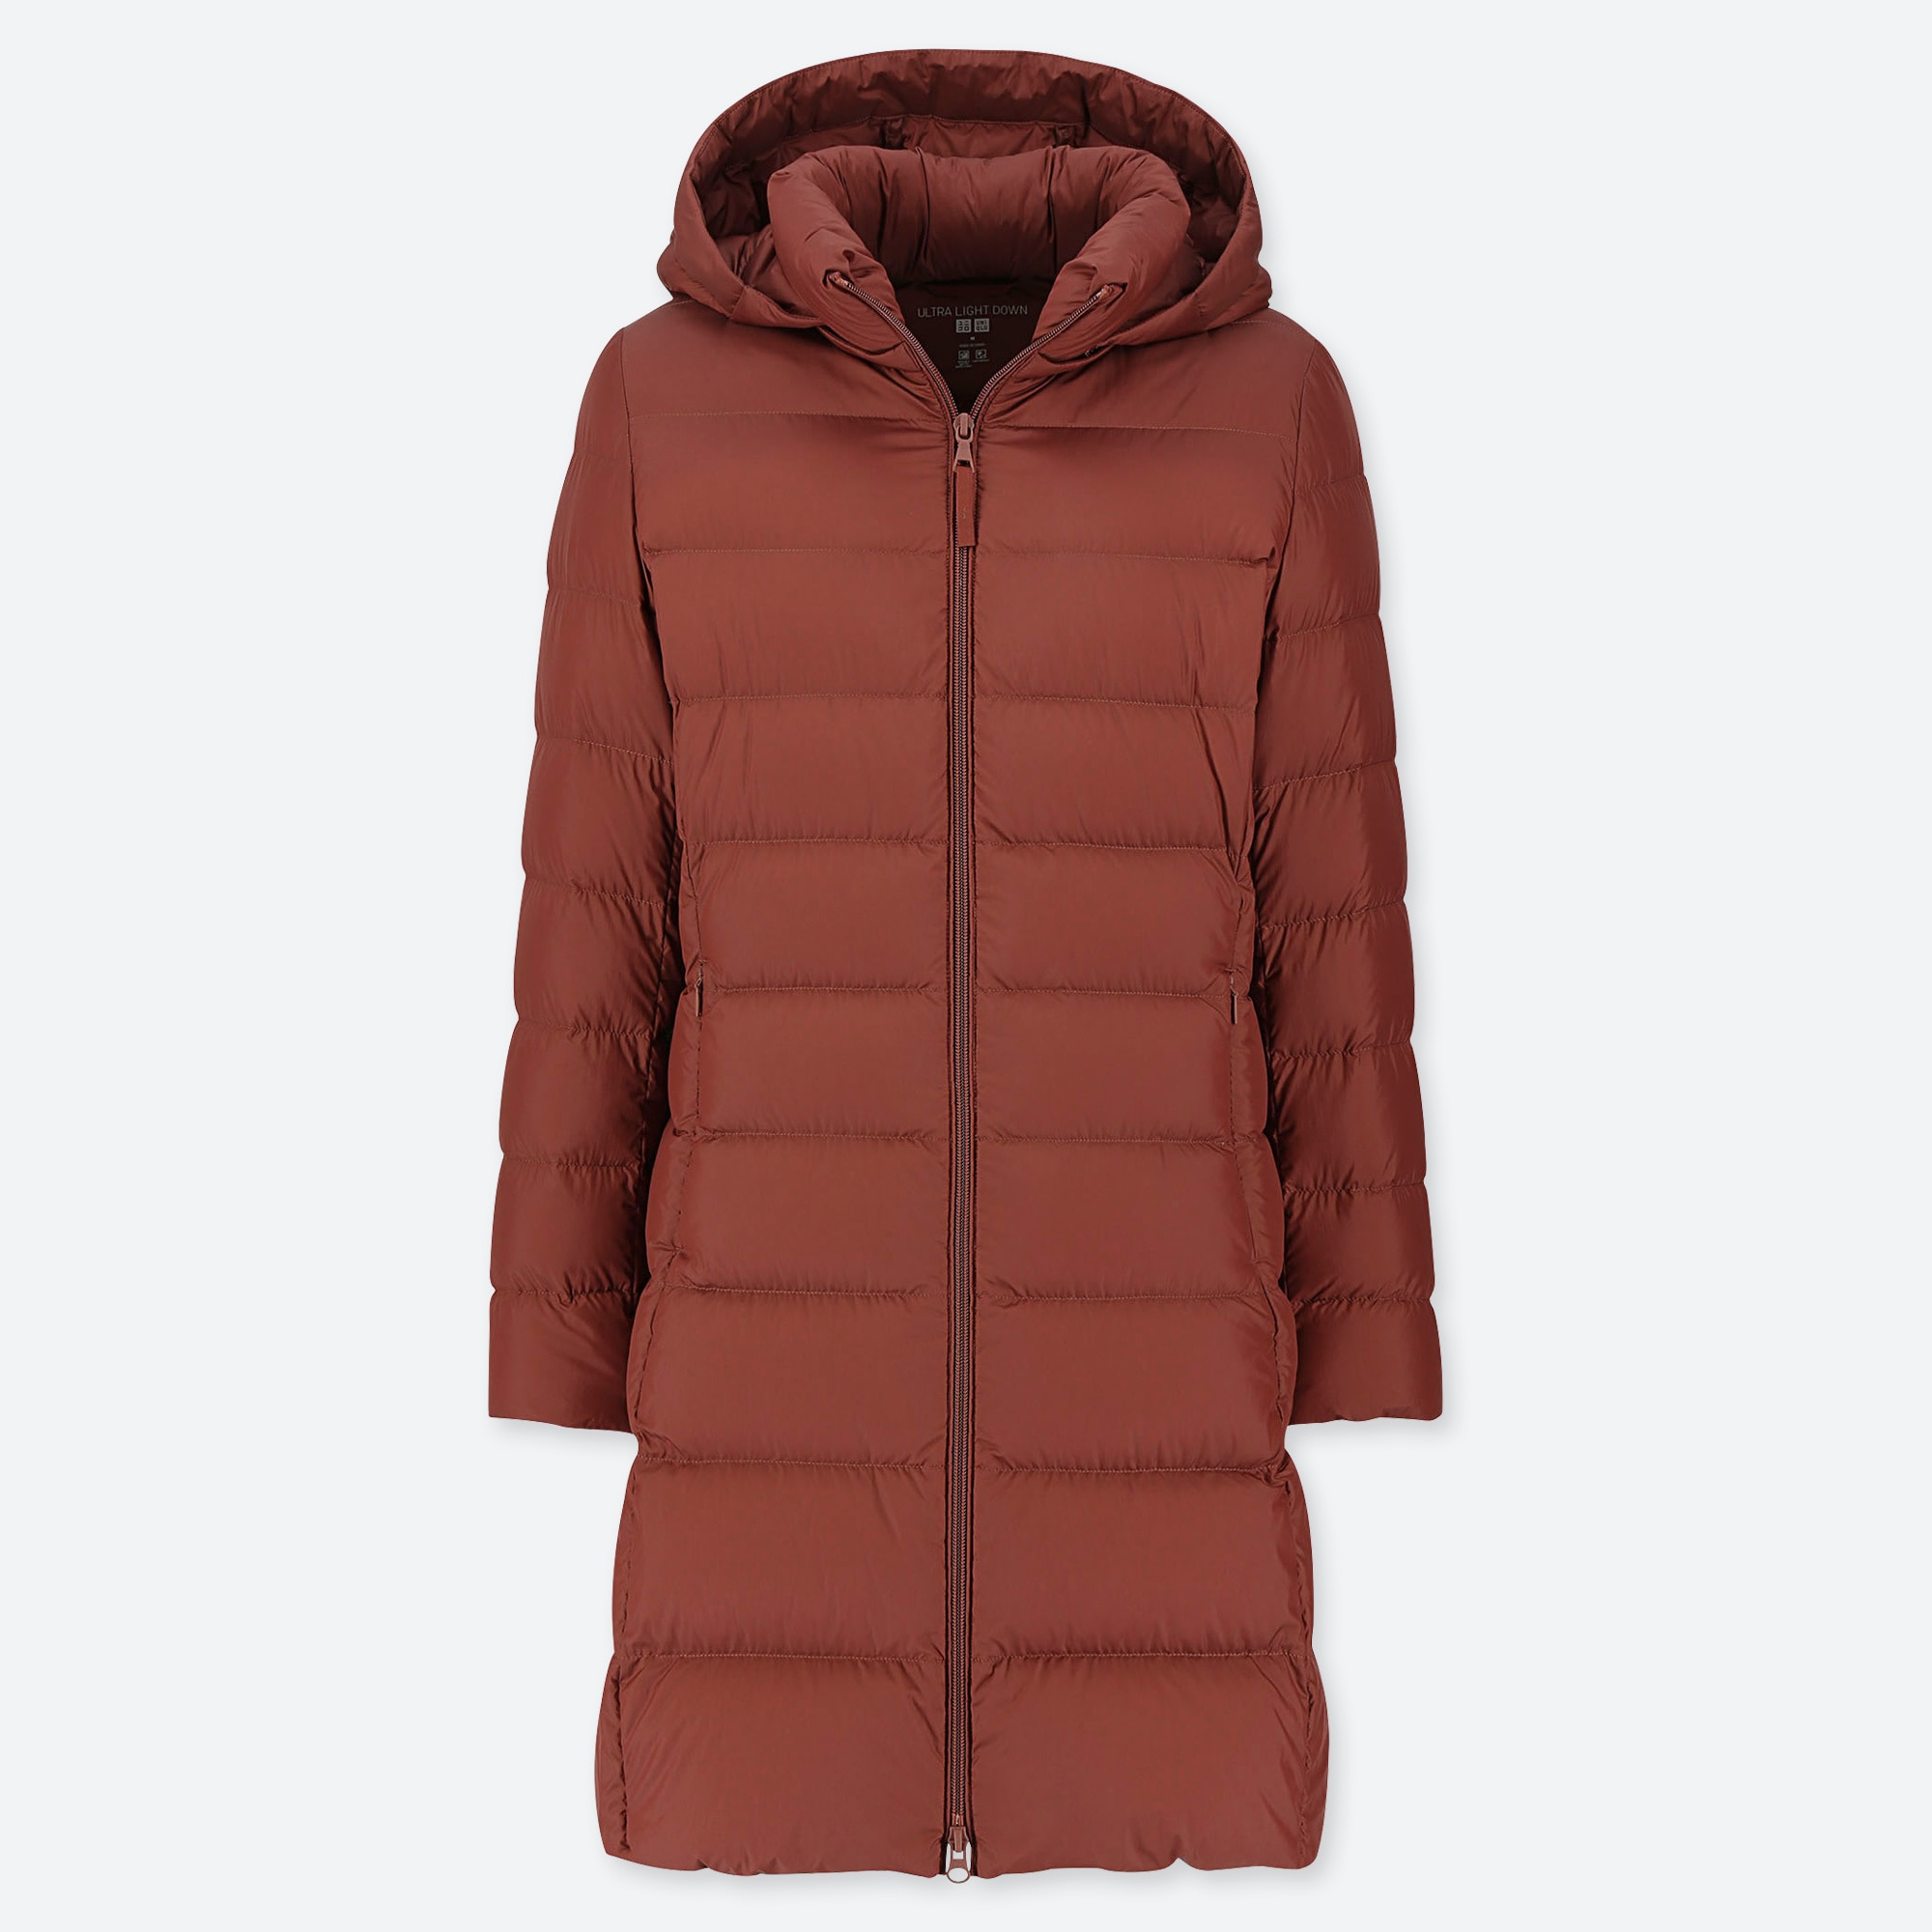 WOMEN ULTRA LIGHT DOWN HOODED COAT : Color - 37 Brown, Size - L (419852)